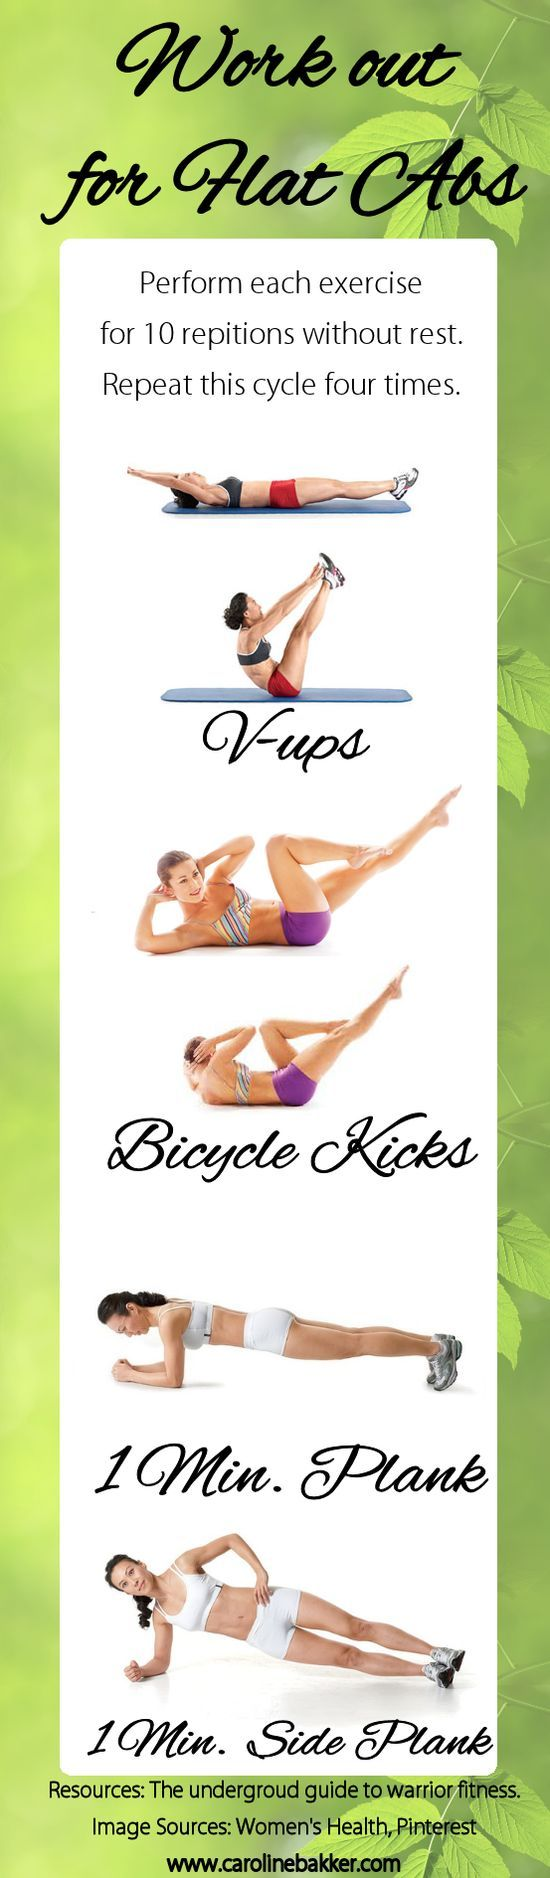 Try this work out and see the results! As we all know, the abs are one of the most troubled areas for both men and women so here is a combination of quick high intensity exercise combined with strength building for the abdominal